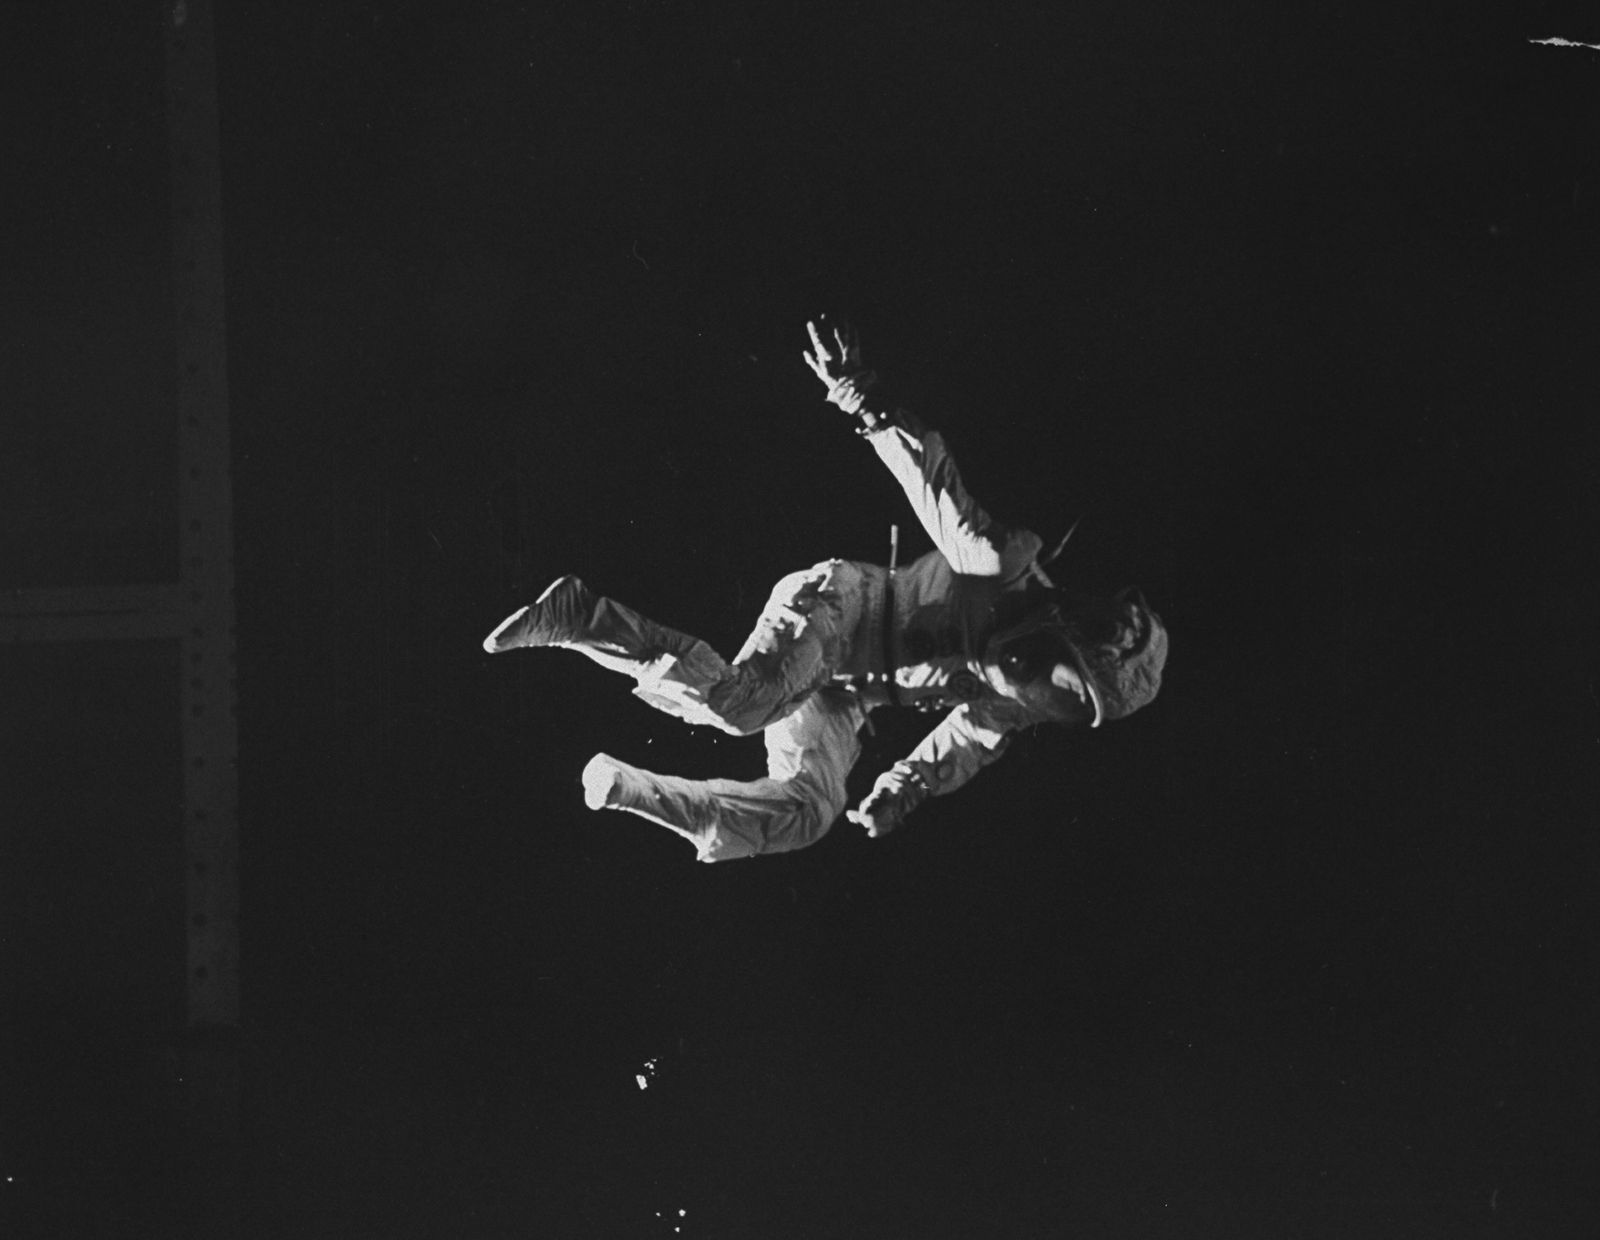 A trampolinist in a space suit imitating